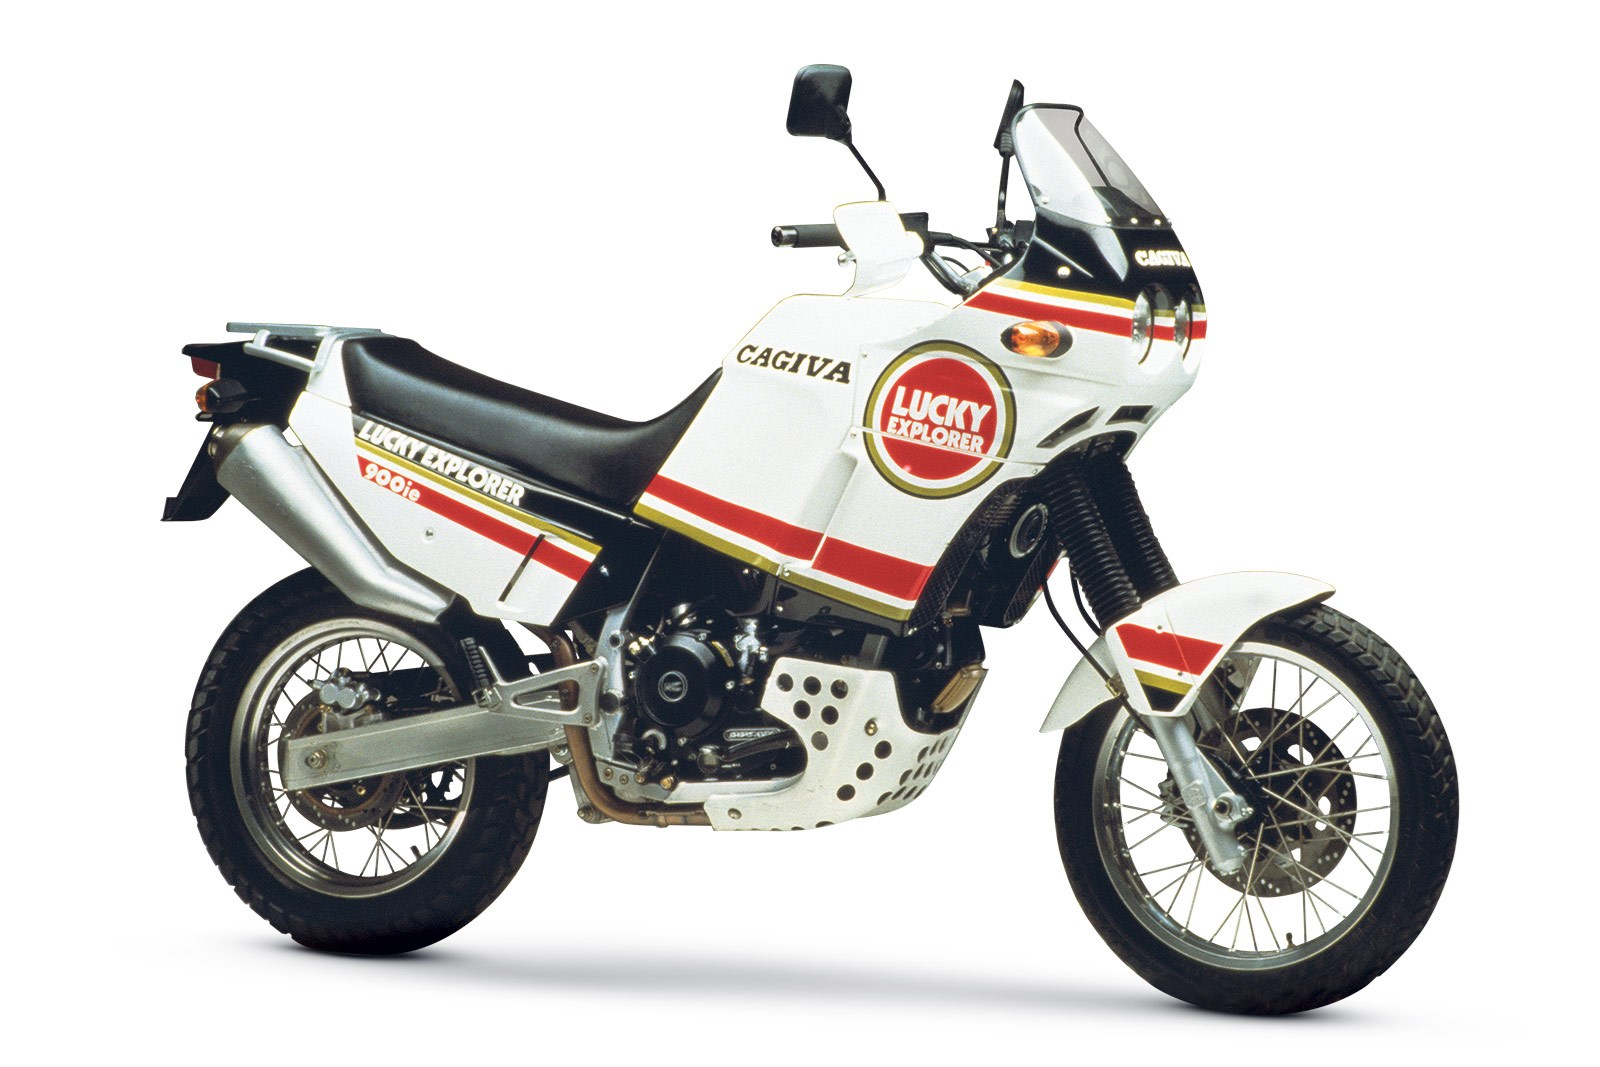 Cagiva Canyon 500 images #69838